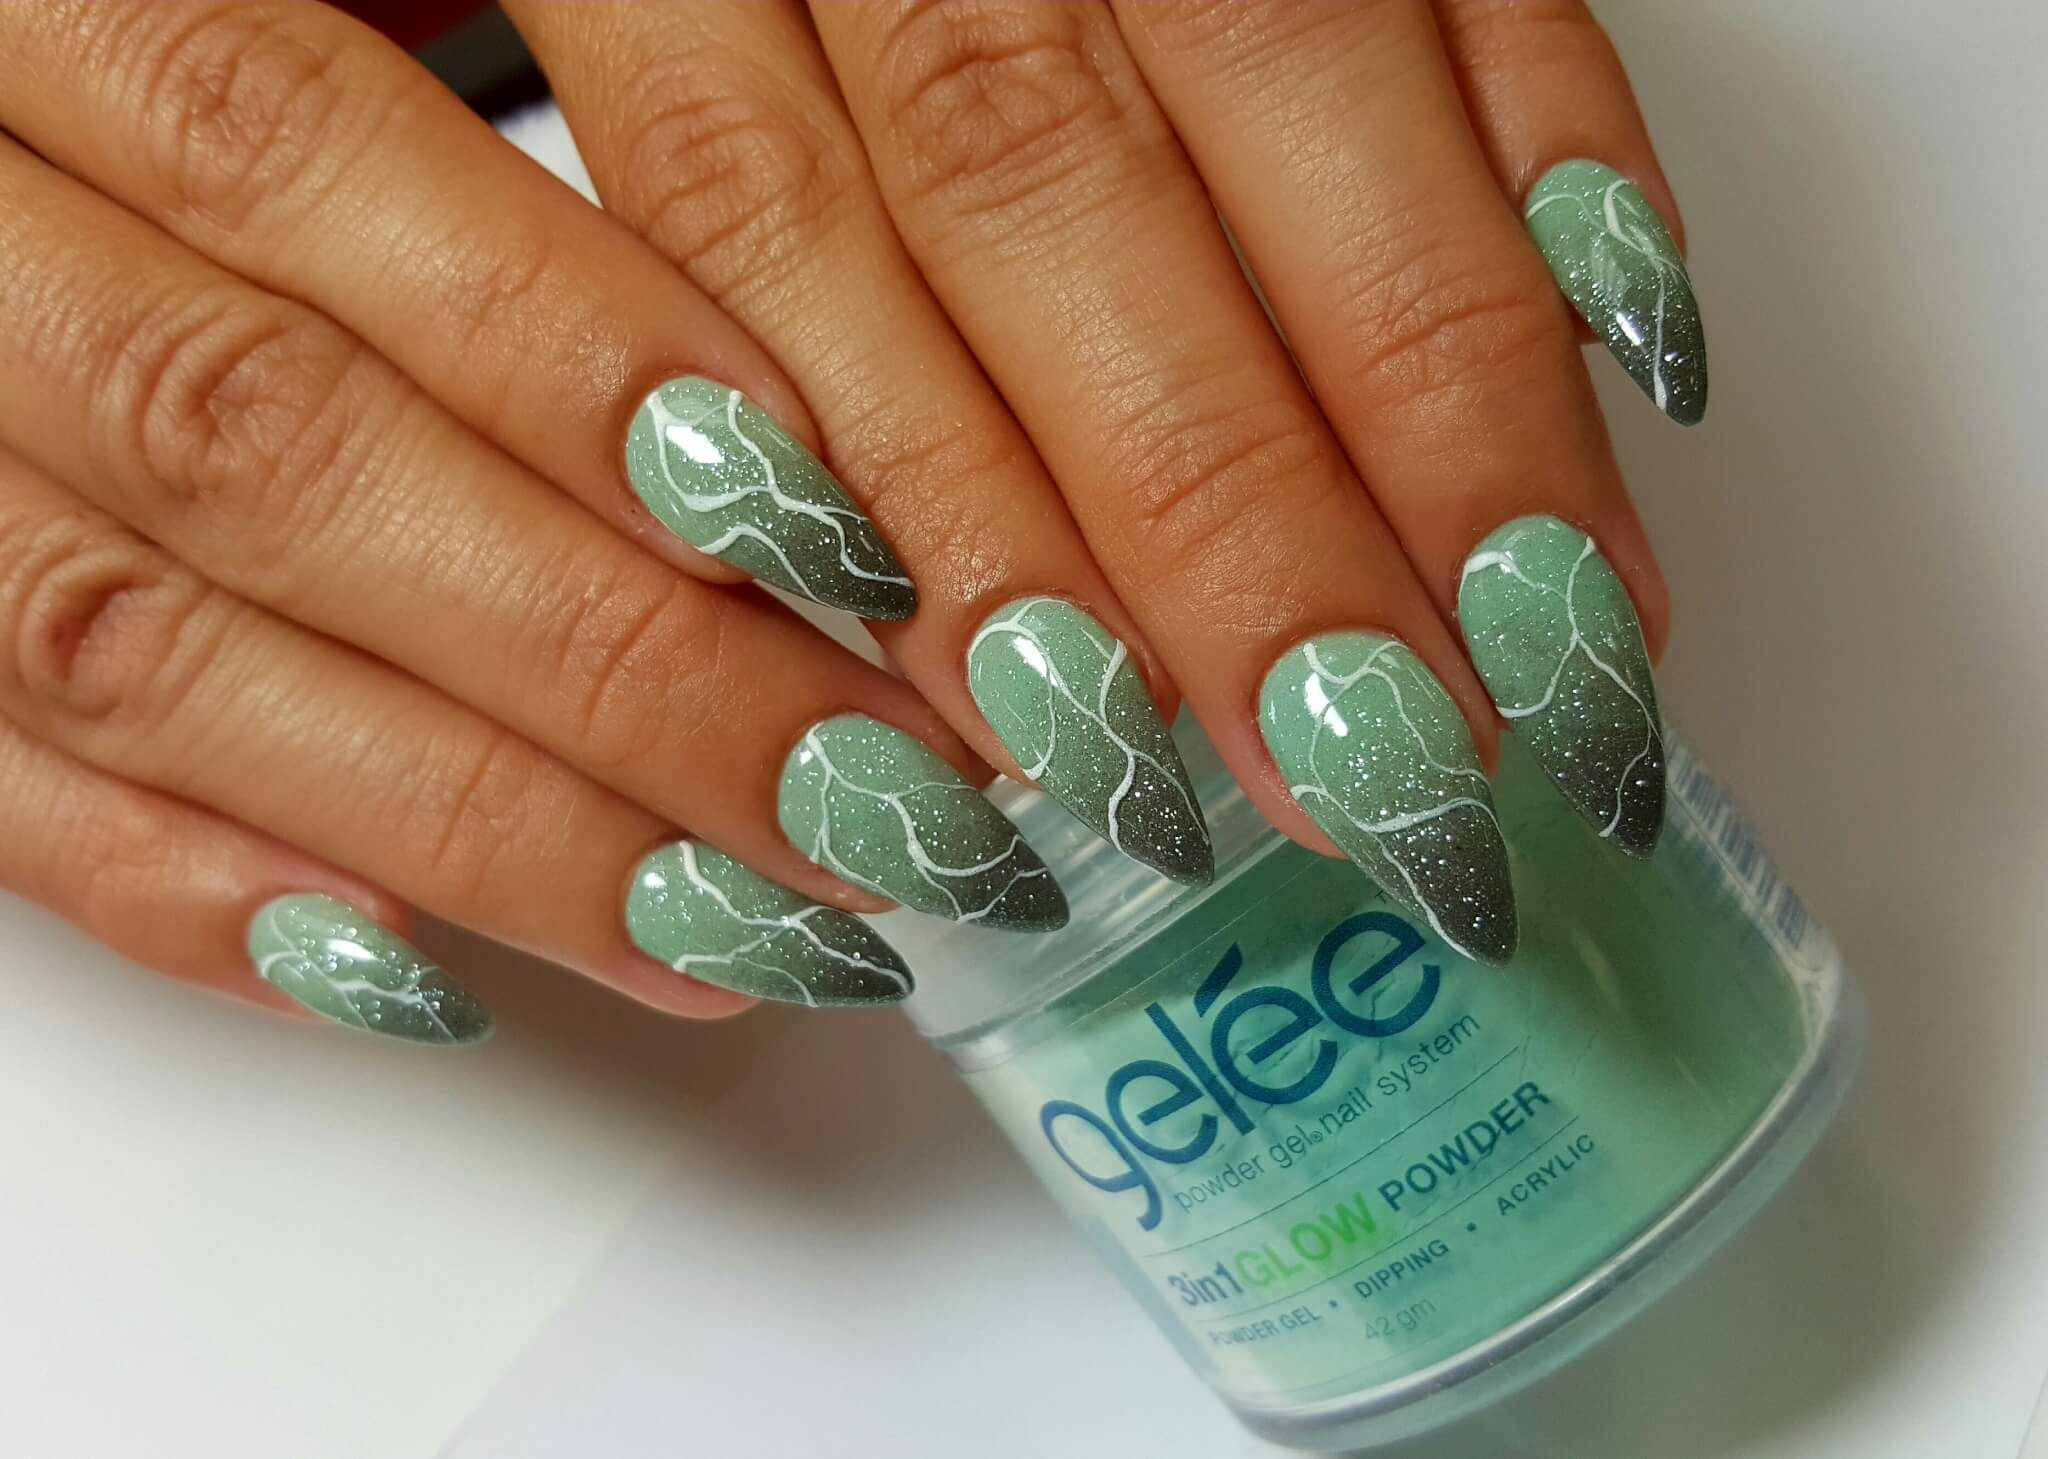 set of green and grey nails.